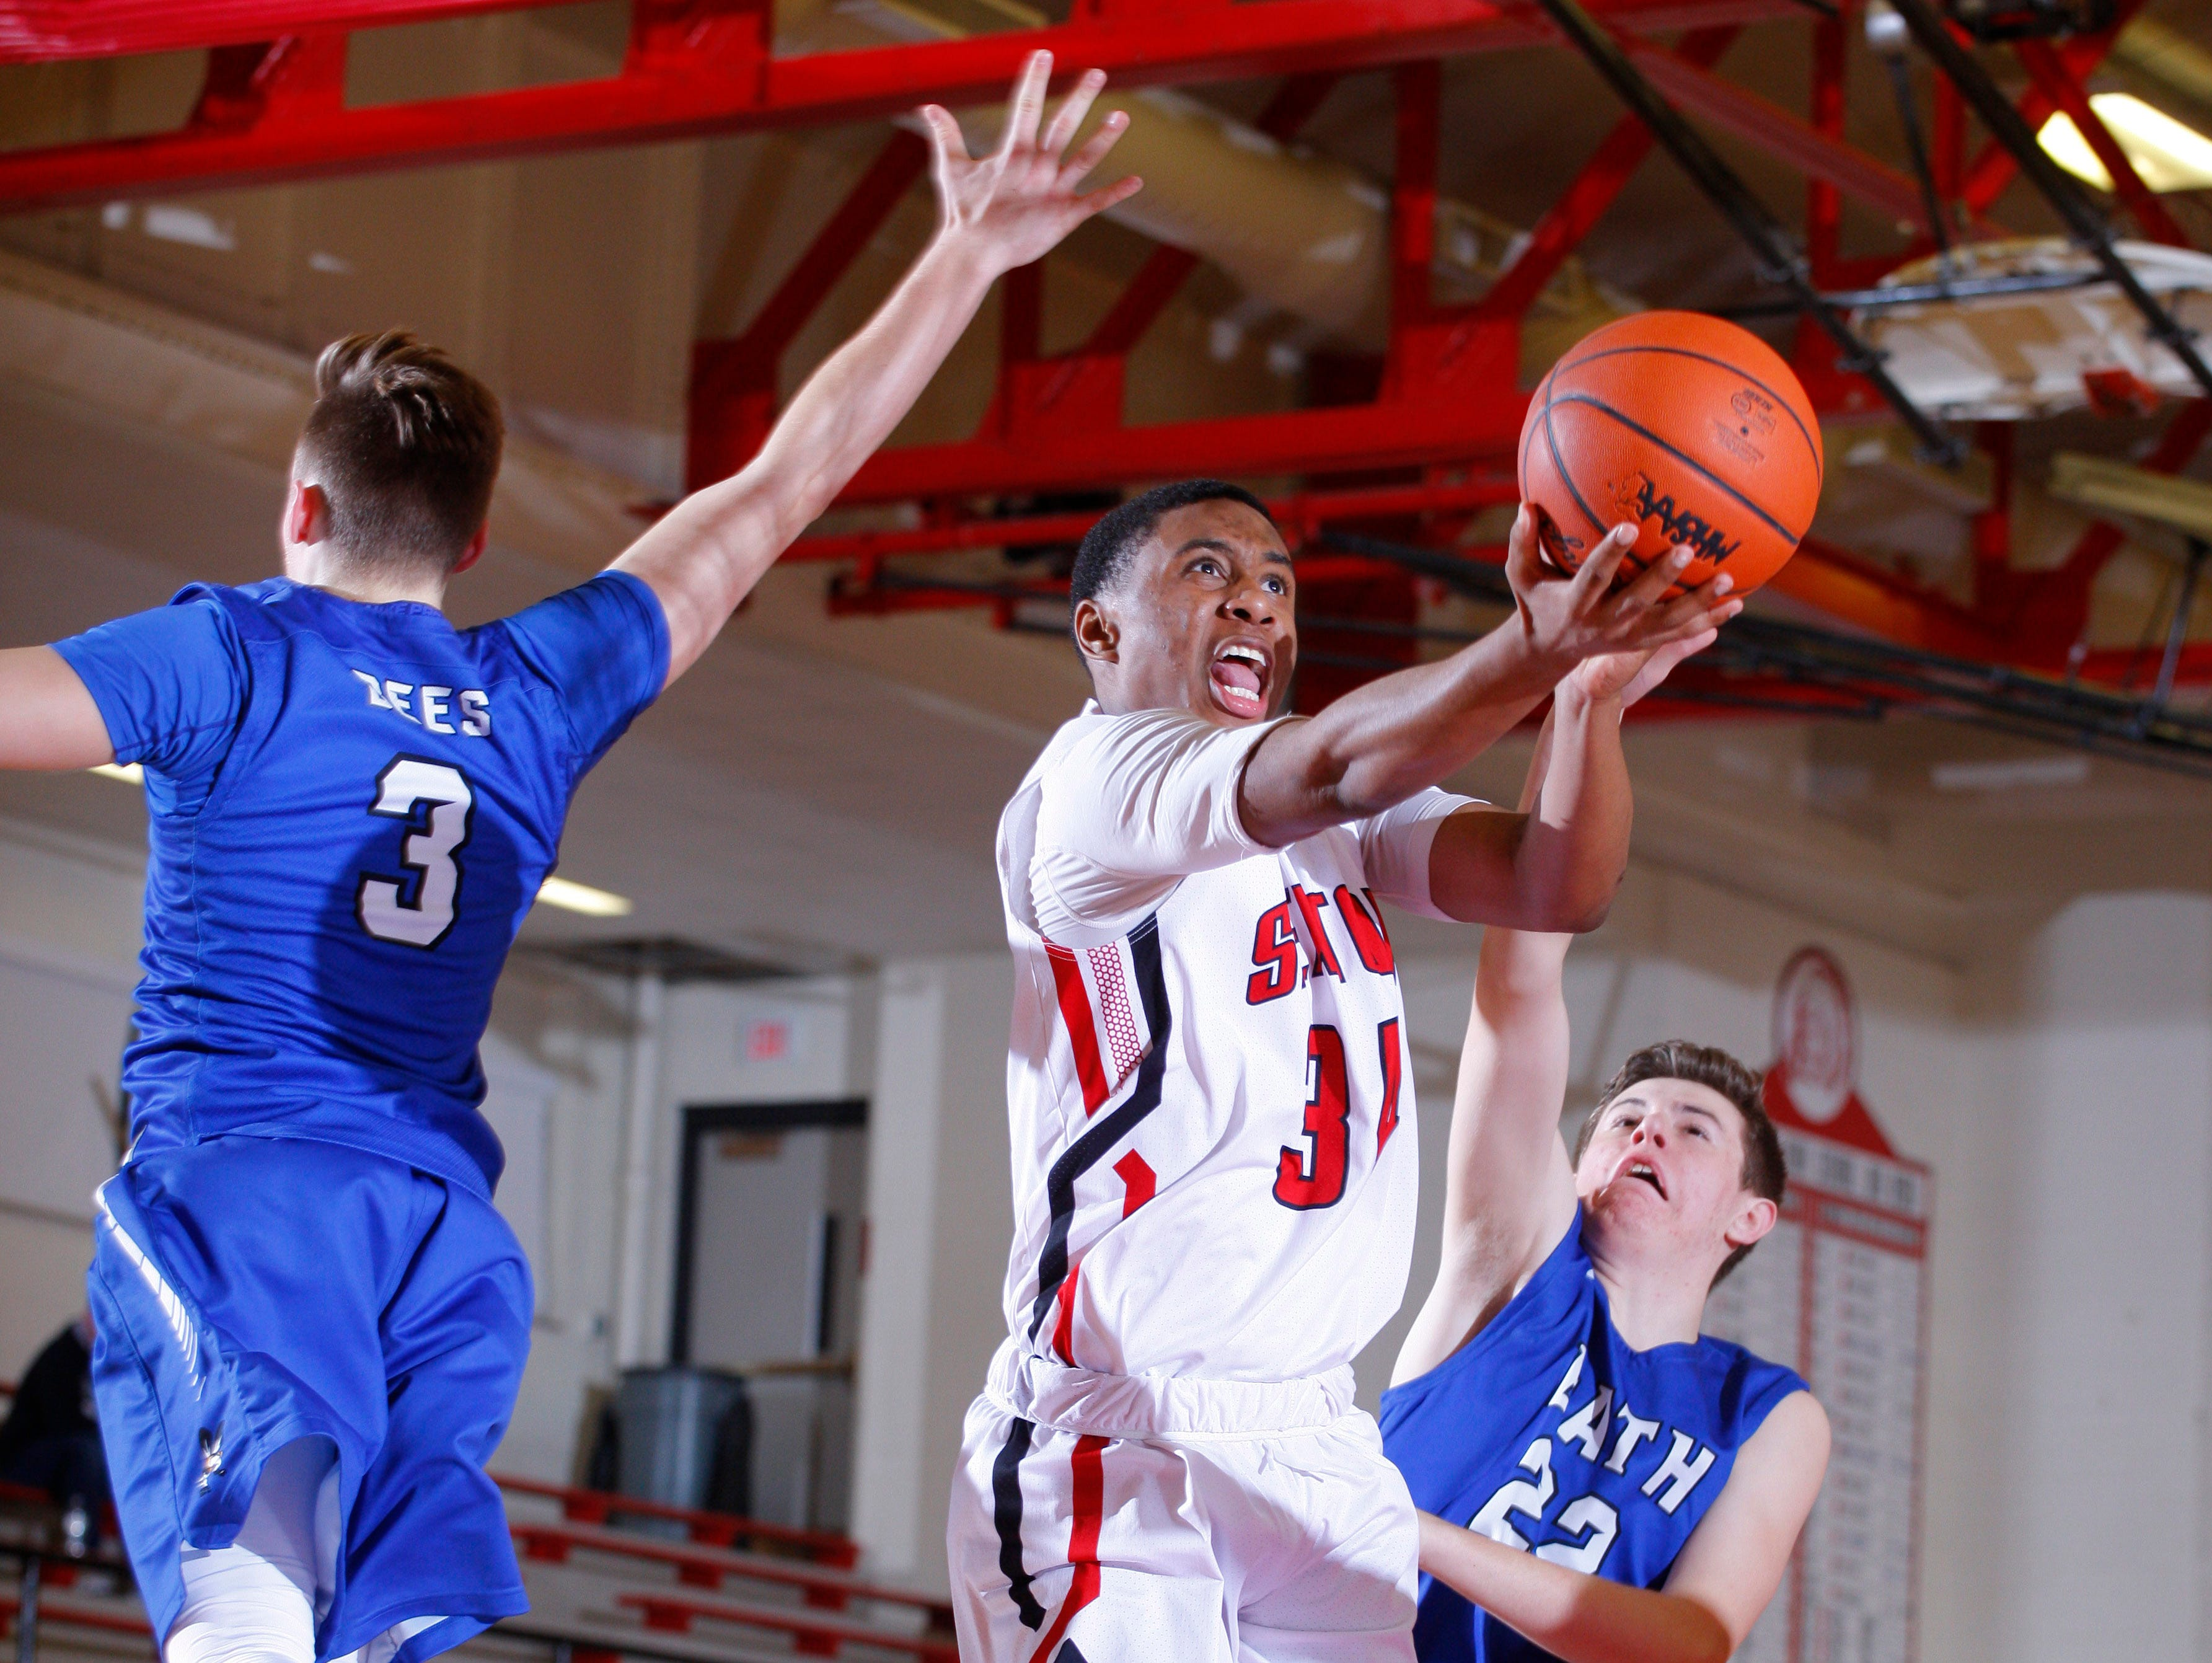 Sexton's Karl Brooks goes up for a layup between Bath's Max Tiraboschi, left, and Jacob Deveau, right, Tuesday, Feb. 7, 2017, in Lansing, Mich. Sexton won 82-39.